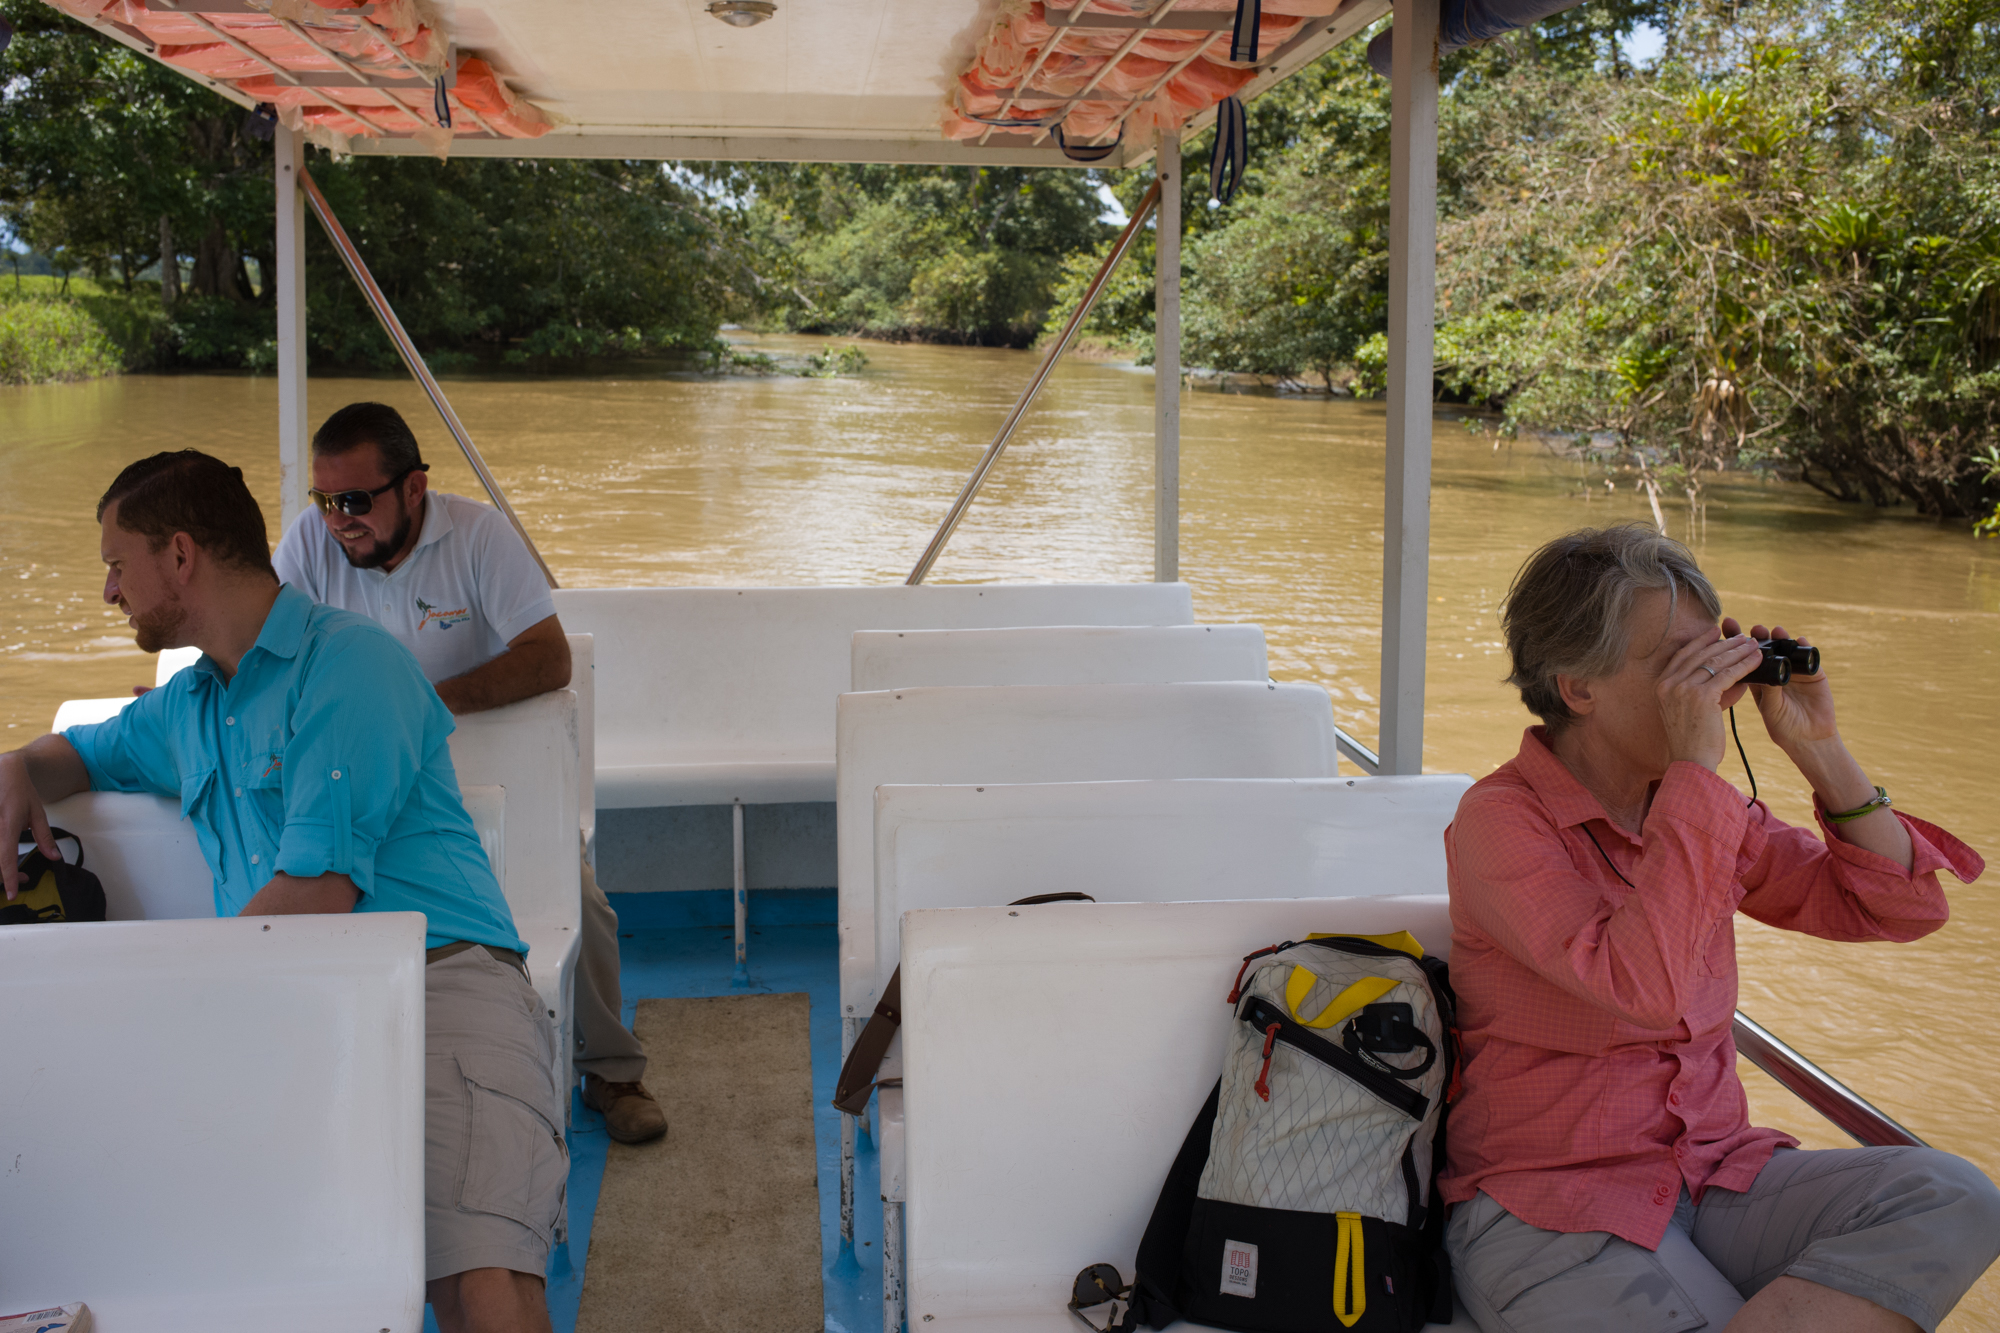 Looking for wildlife on the Cano Negro river